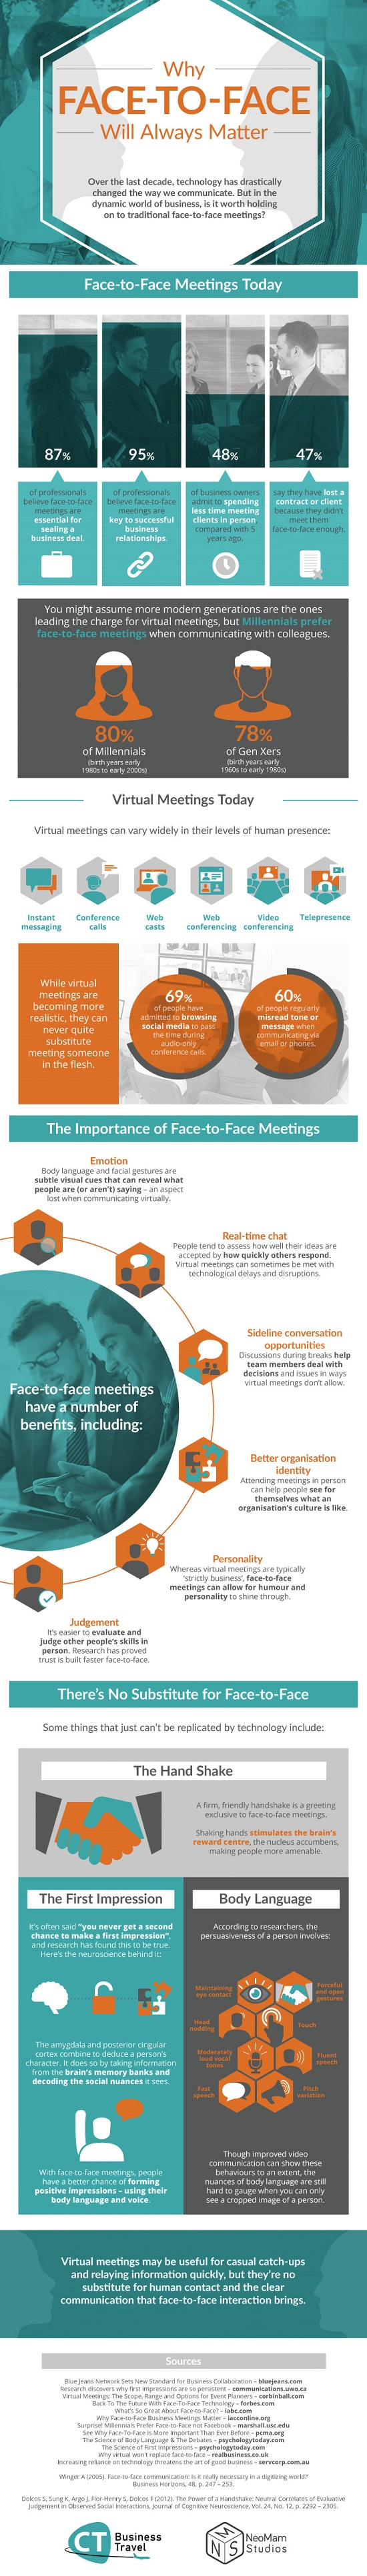 face-face-communication